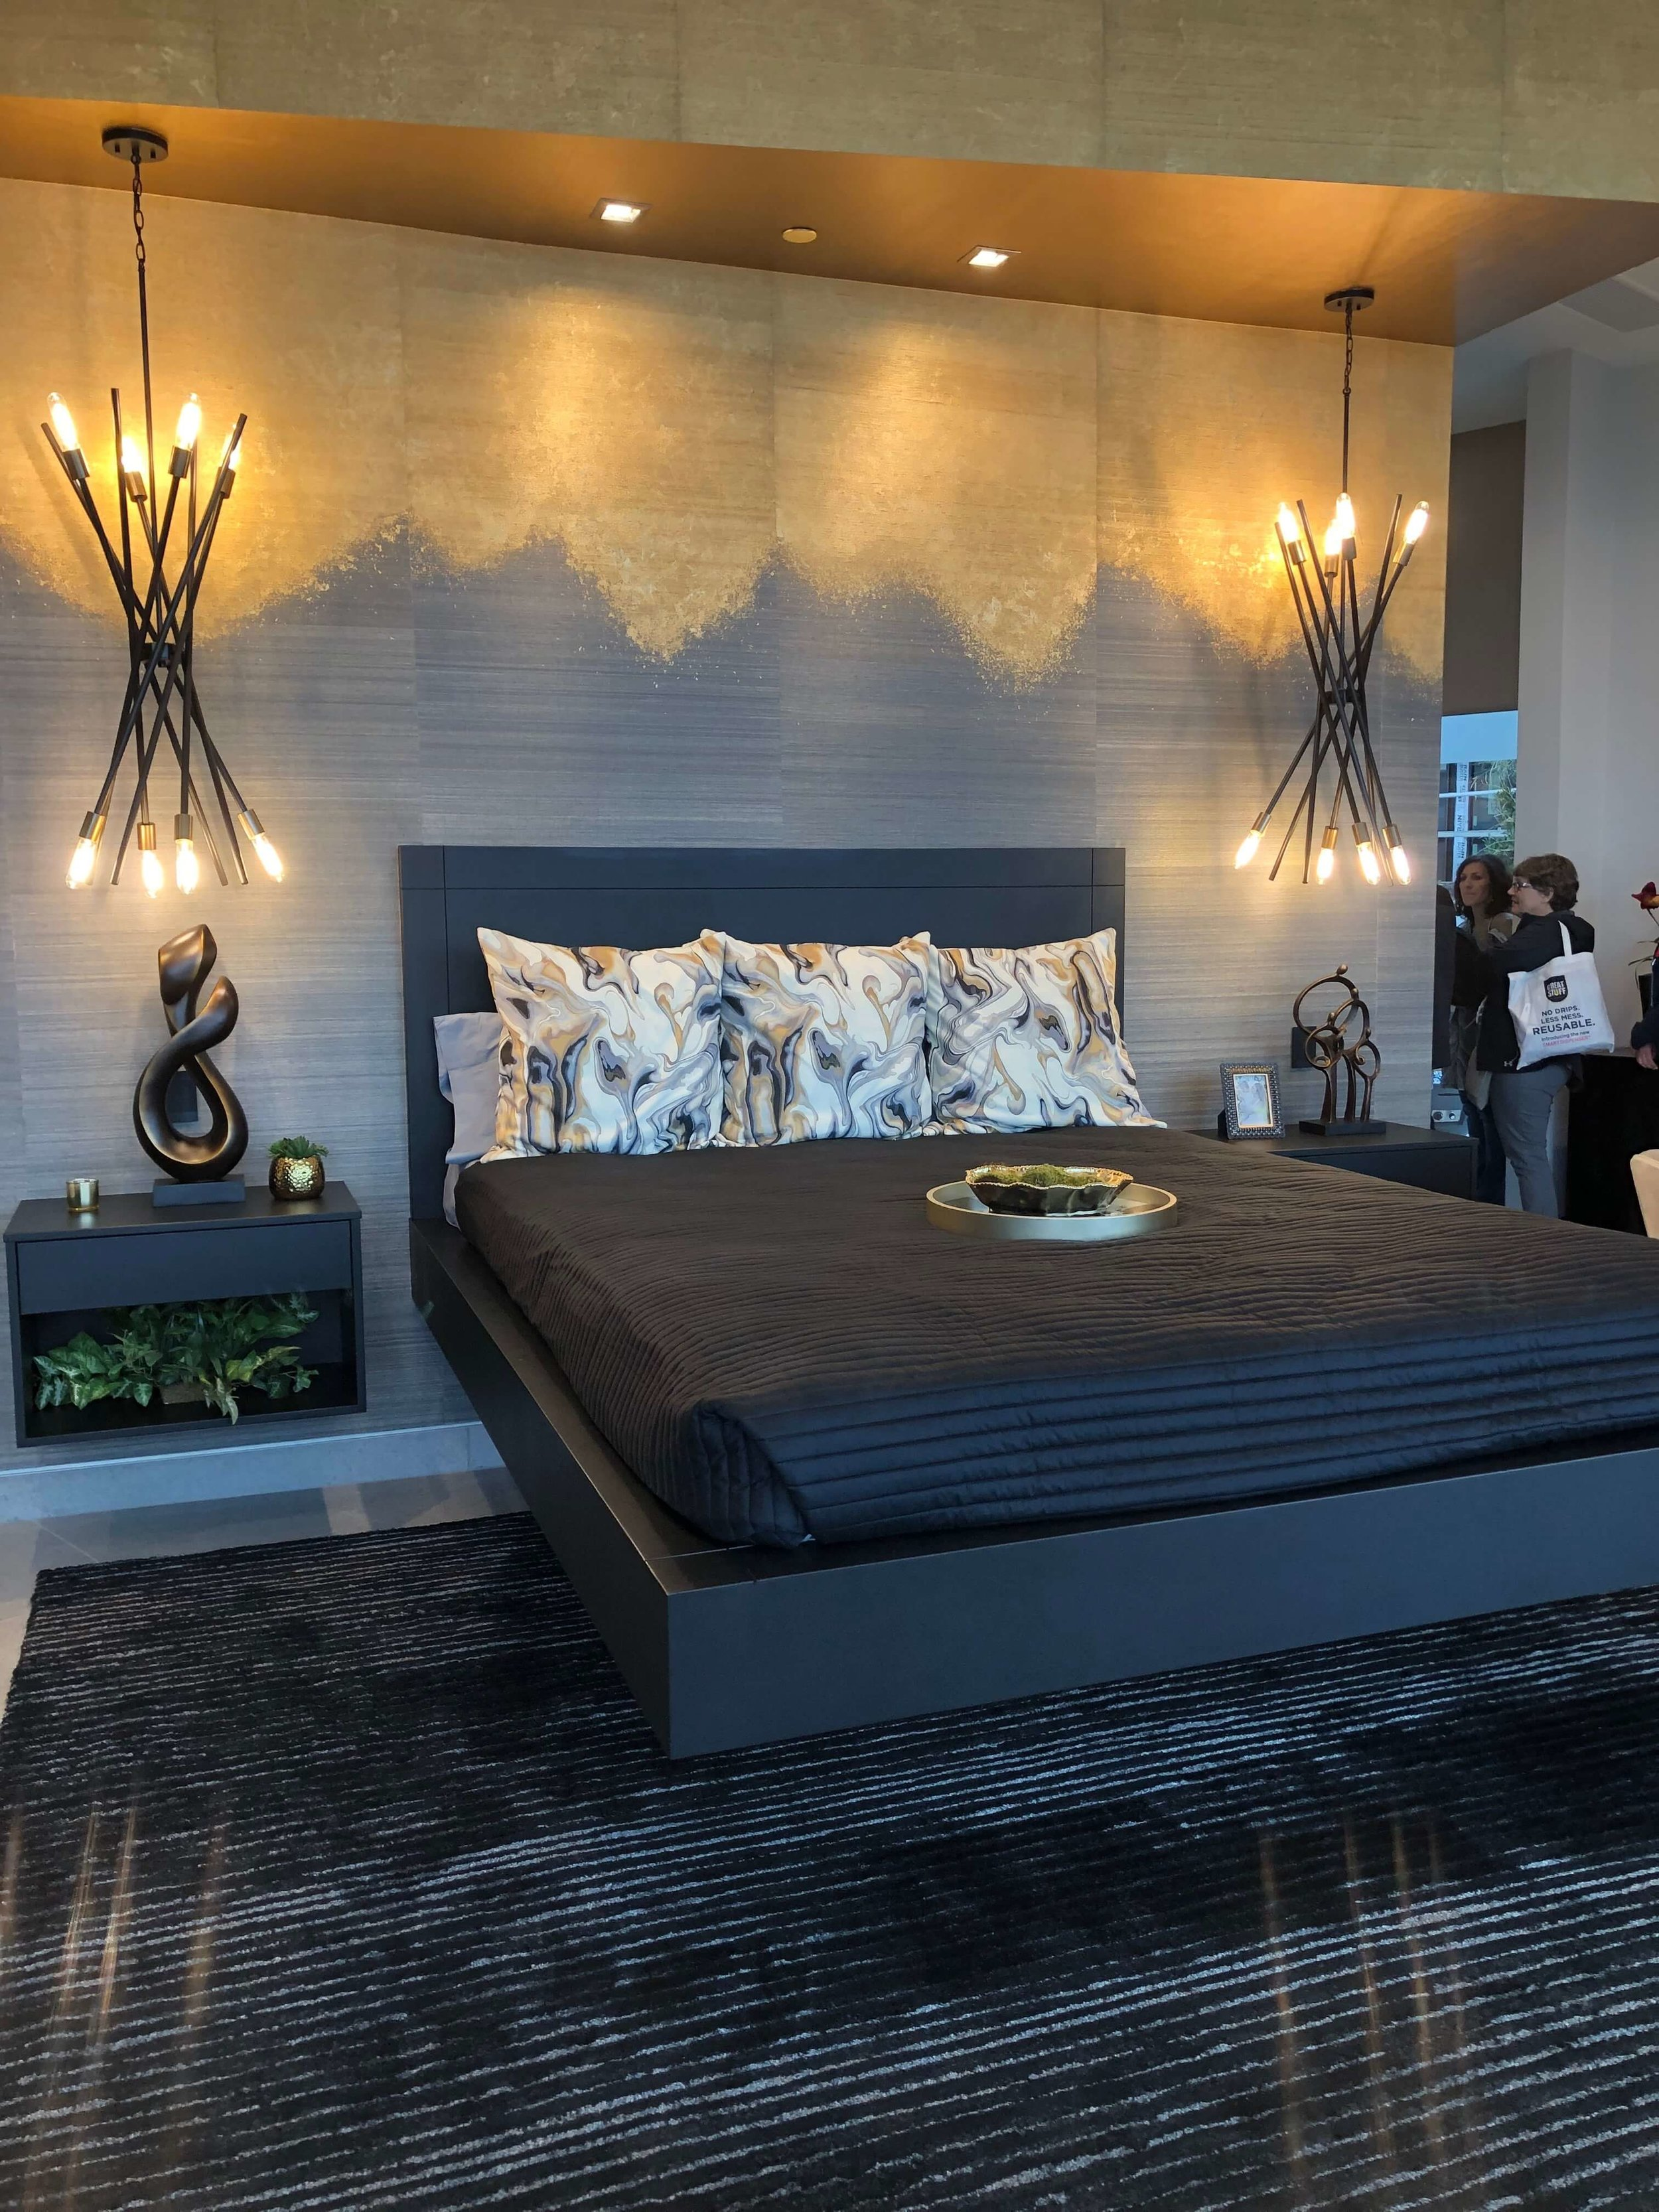 Master bedroom with cantilevered bed, The New American Home Tour 2019 | Designed and built by Sun West Custom Homes #contemporaryhome #bedroom